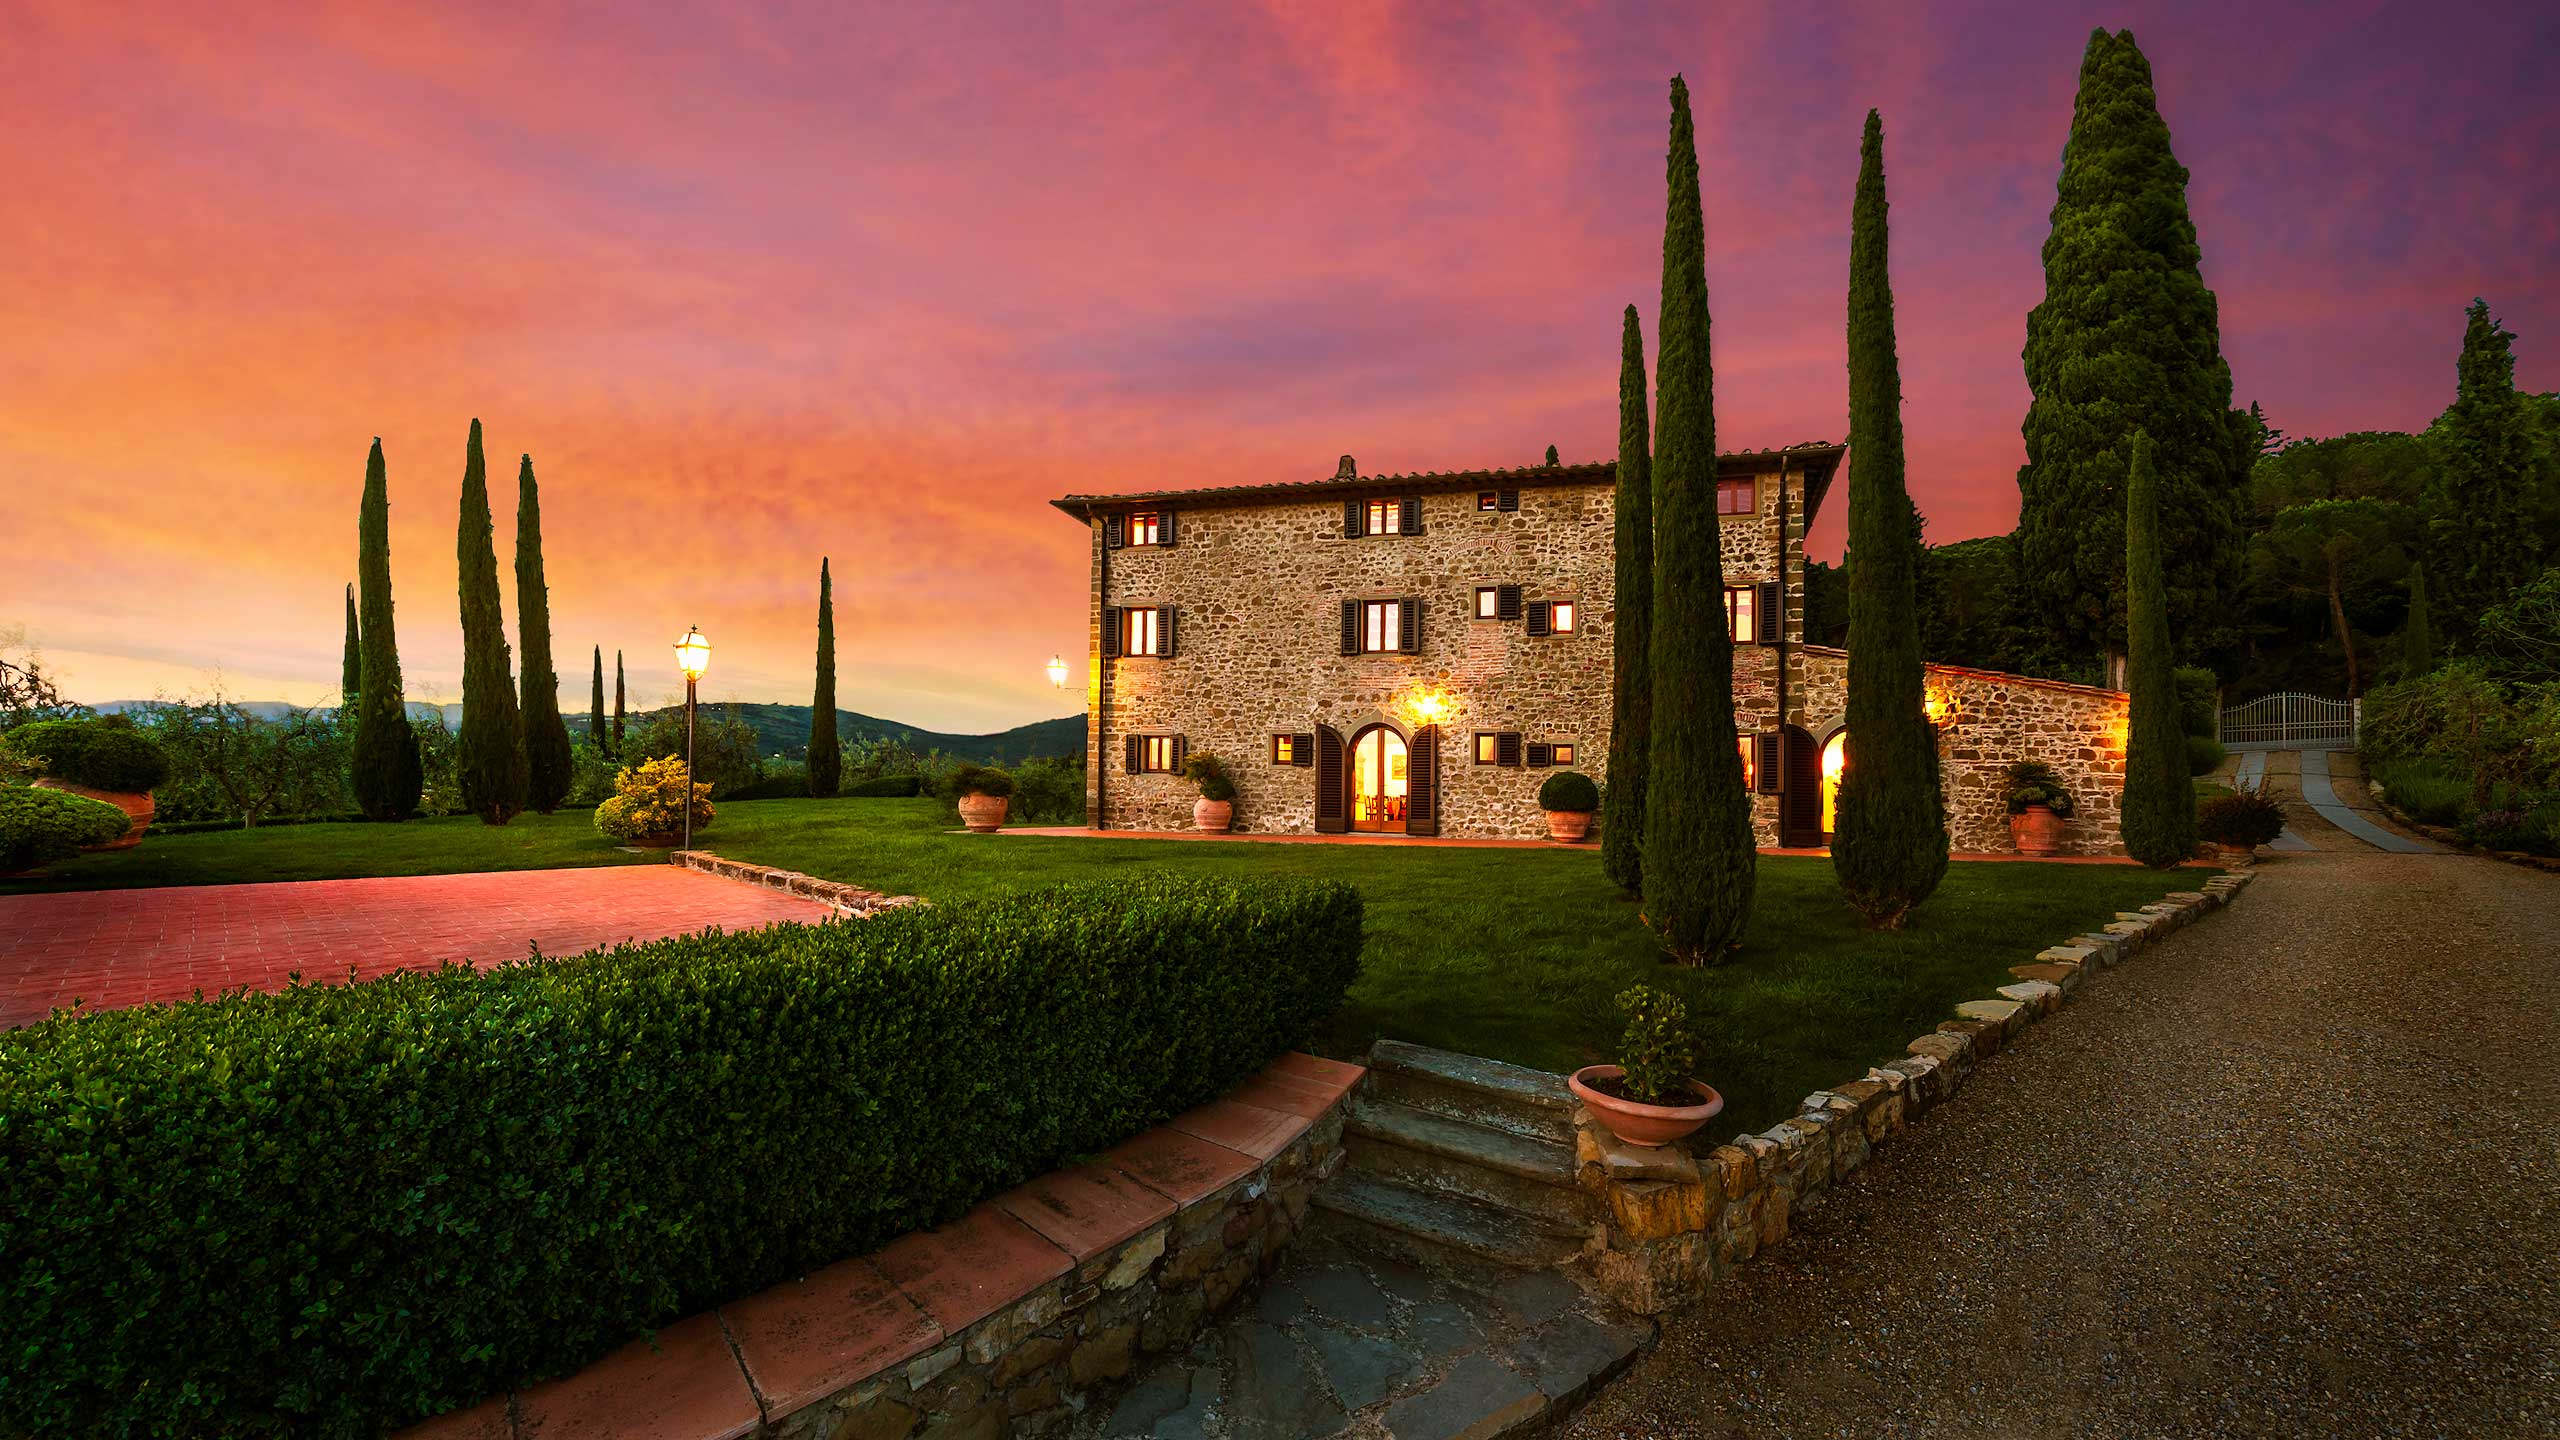 Mansion in tuscany italy hd wallpaper background image for Made com italia